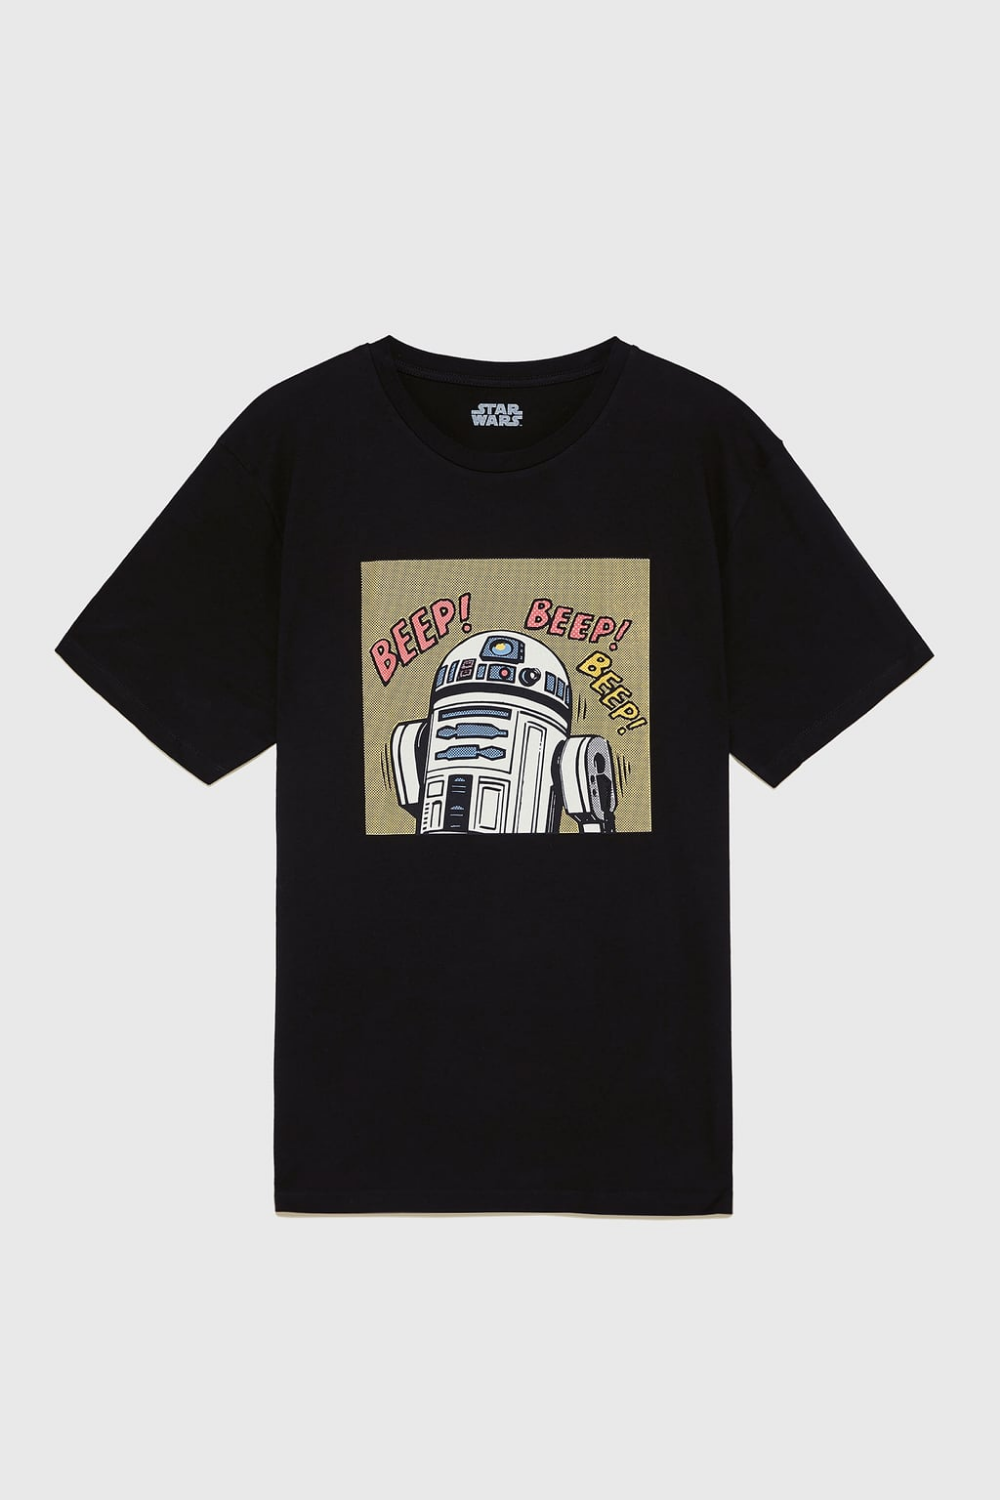 OFFICIALLY LICENSED™ STAR WARS T - SHIRT-Printed-T-SHIRTS ...